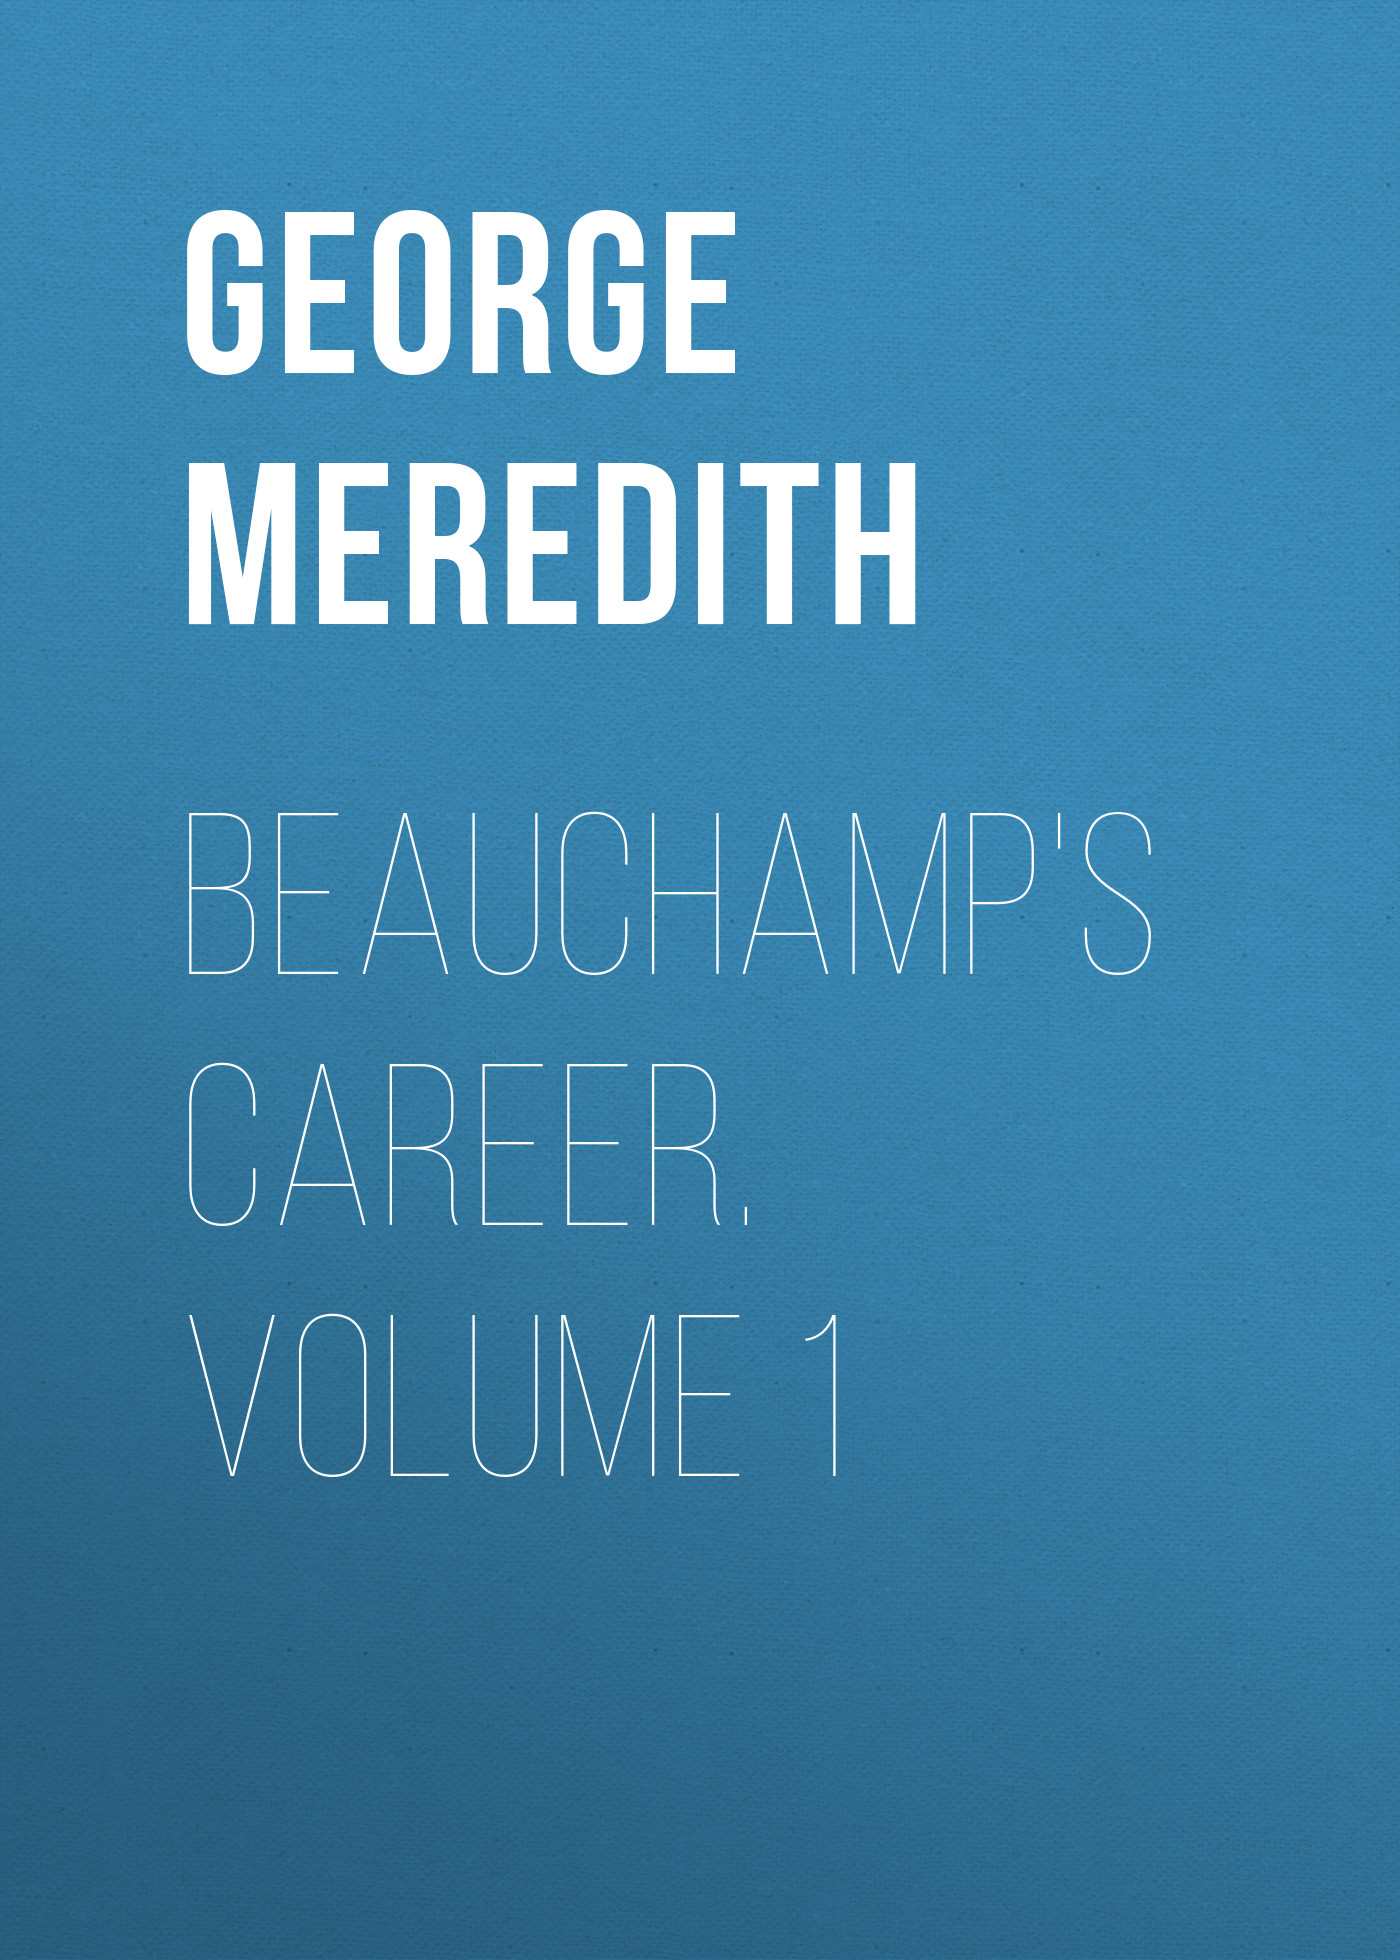 цена George Meredith Beauchamp's Career. Volume 1 в интернет-магазинах